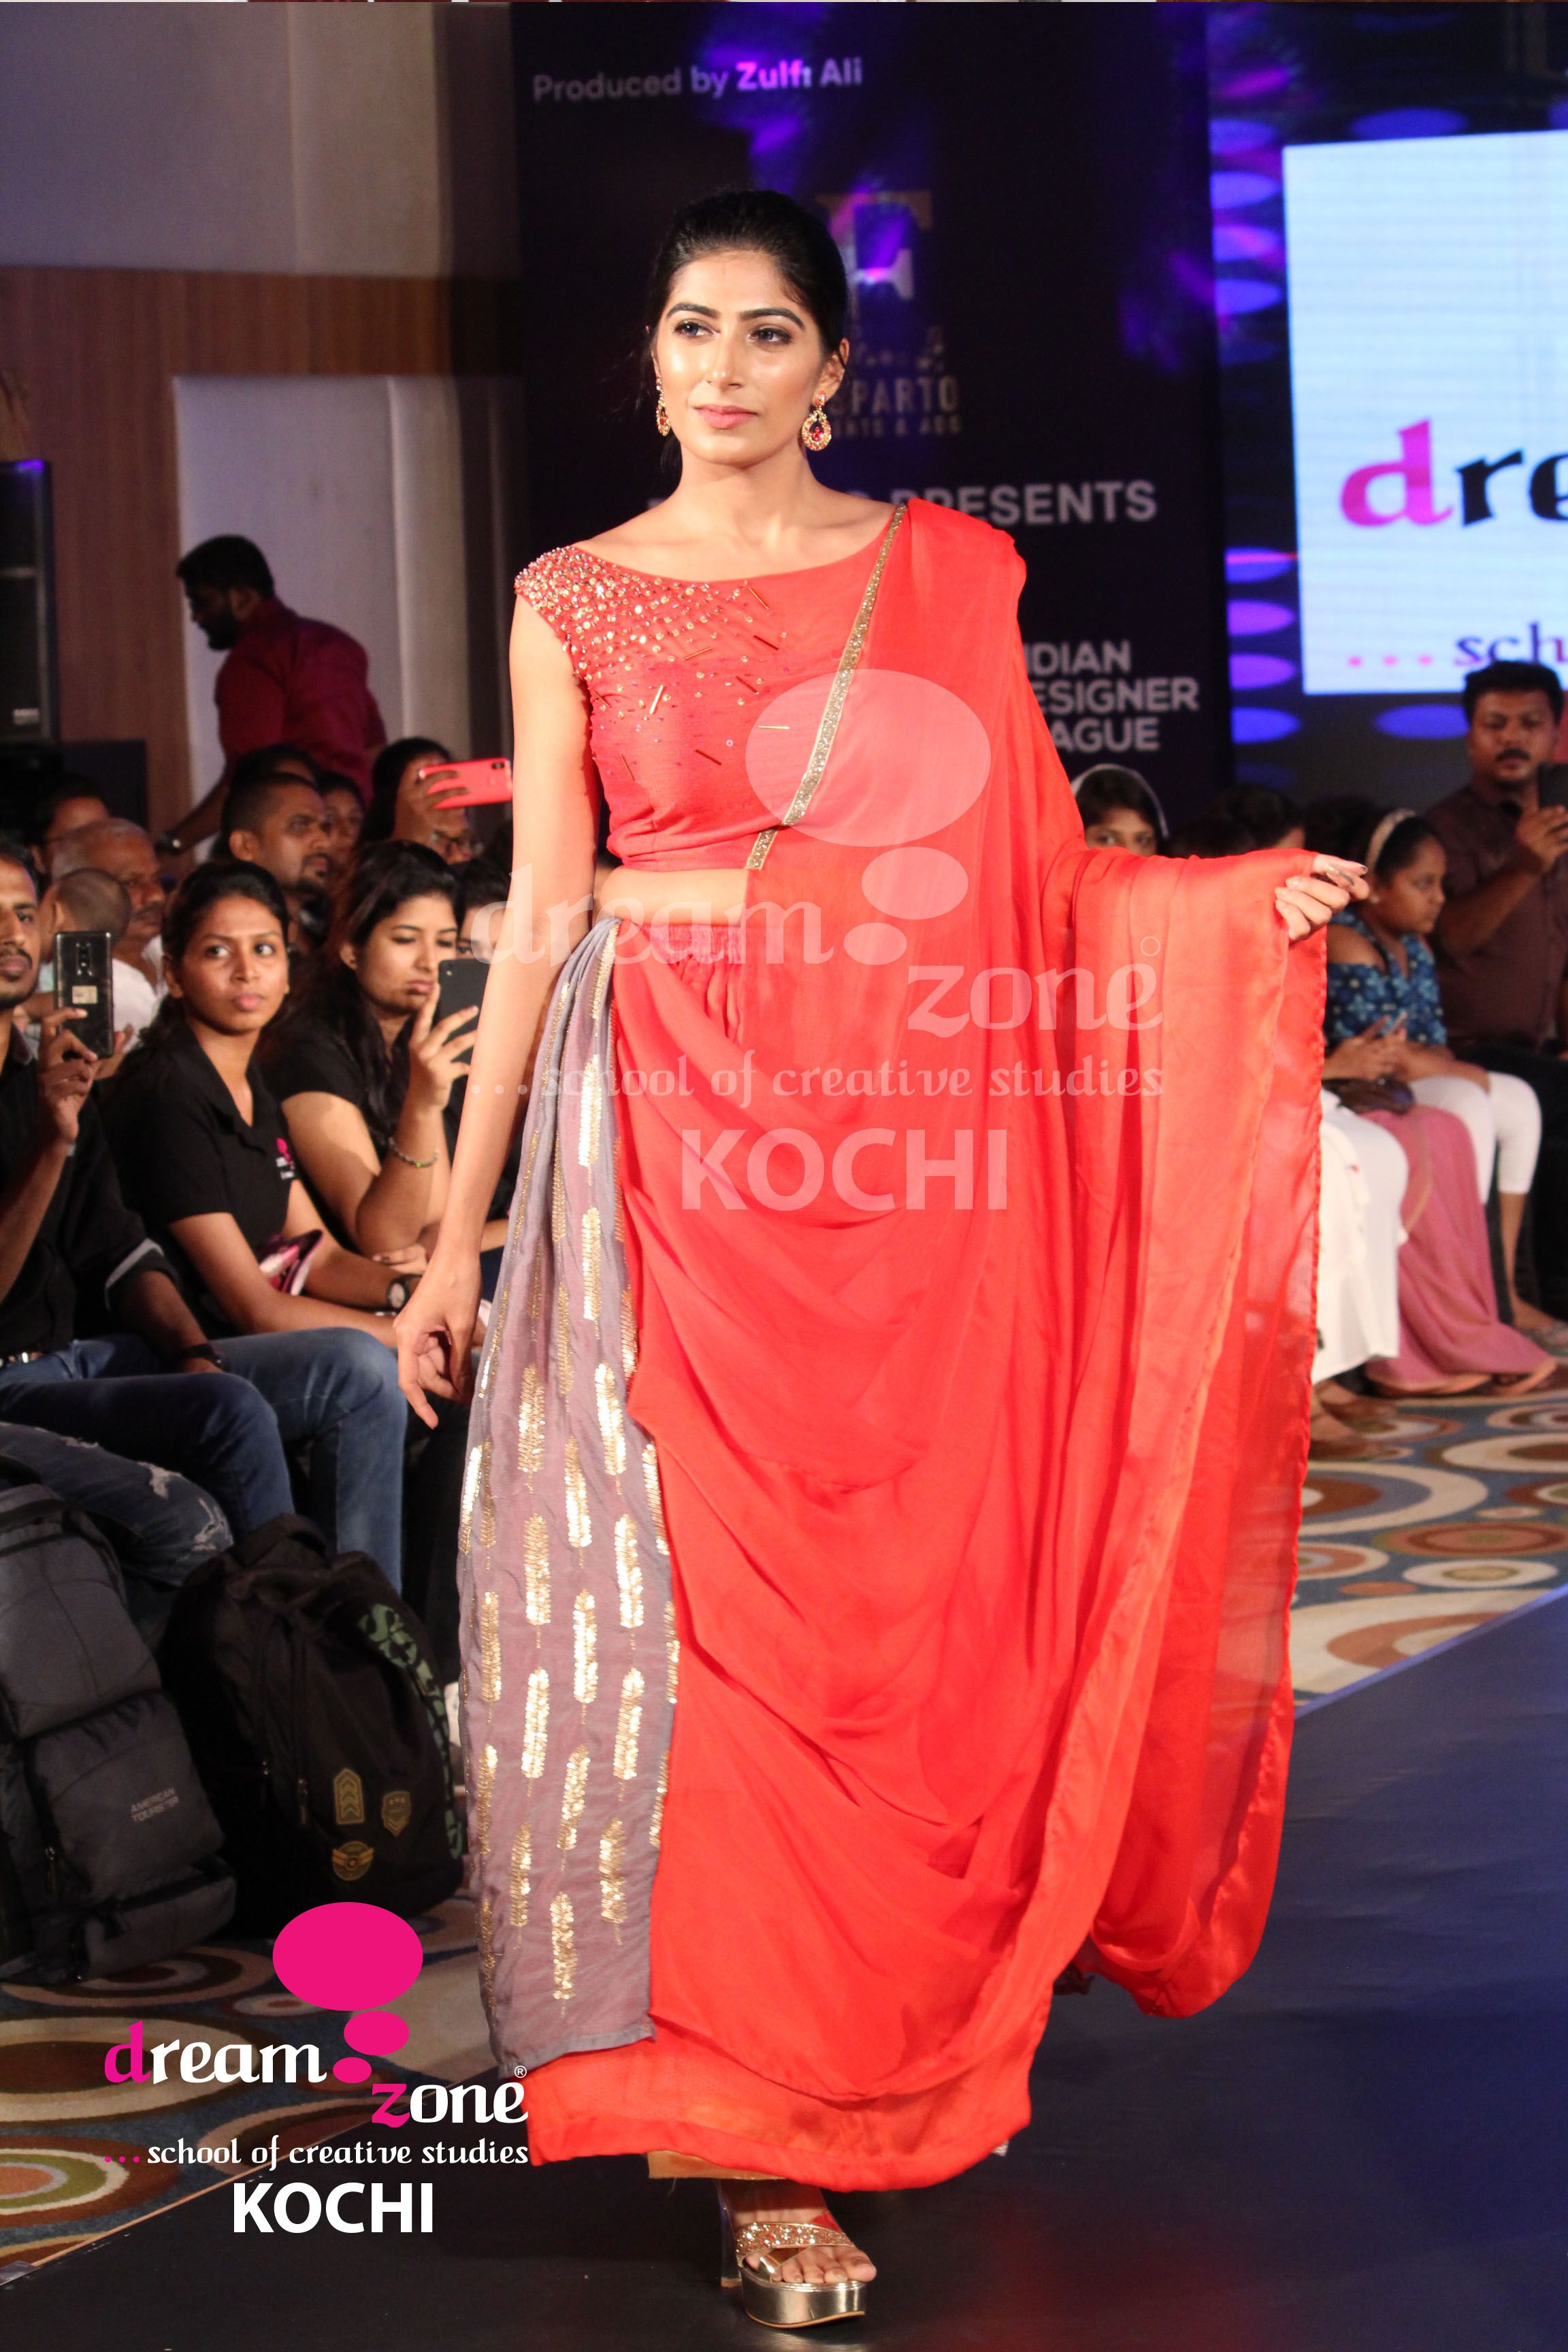 Dreamzone S School Of Fashion Design Engages Students In The Creative Science Of Aligning With C With Images Fashion Designing Course Fashion Design Graphic Design Course